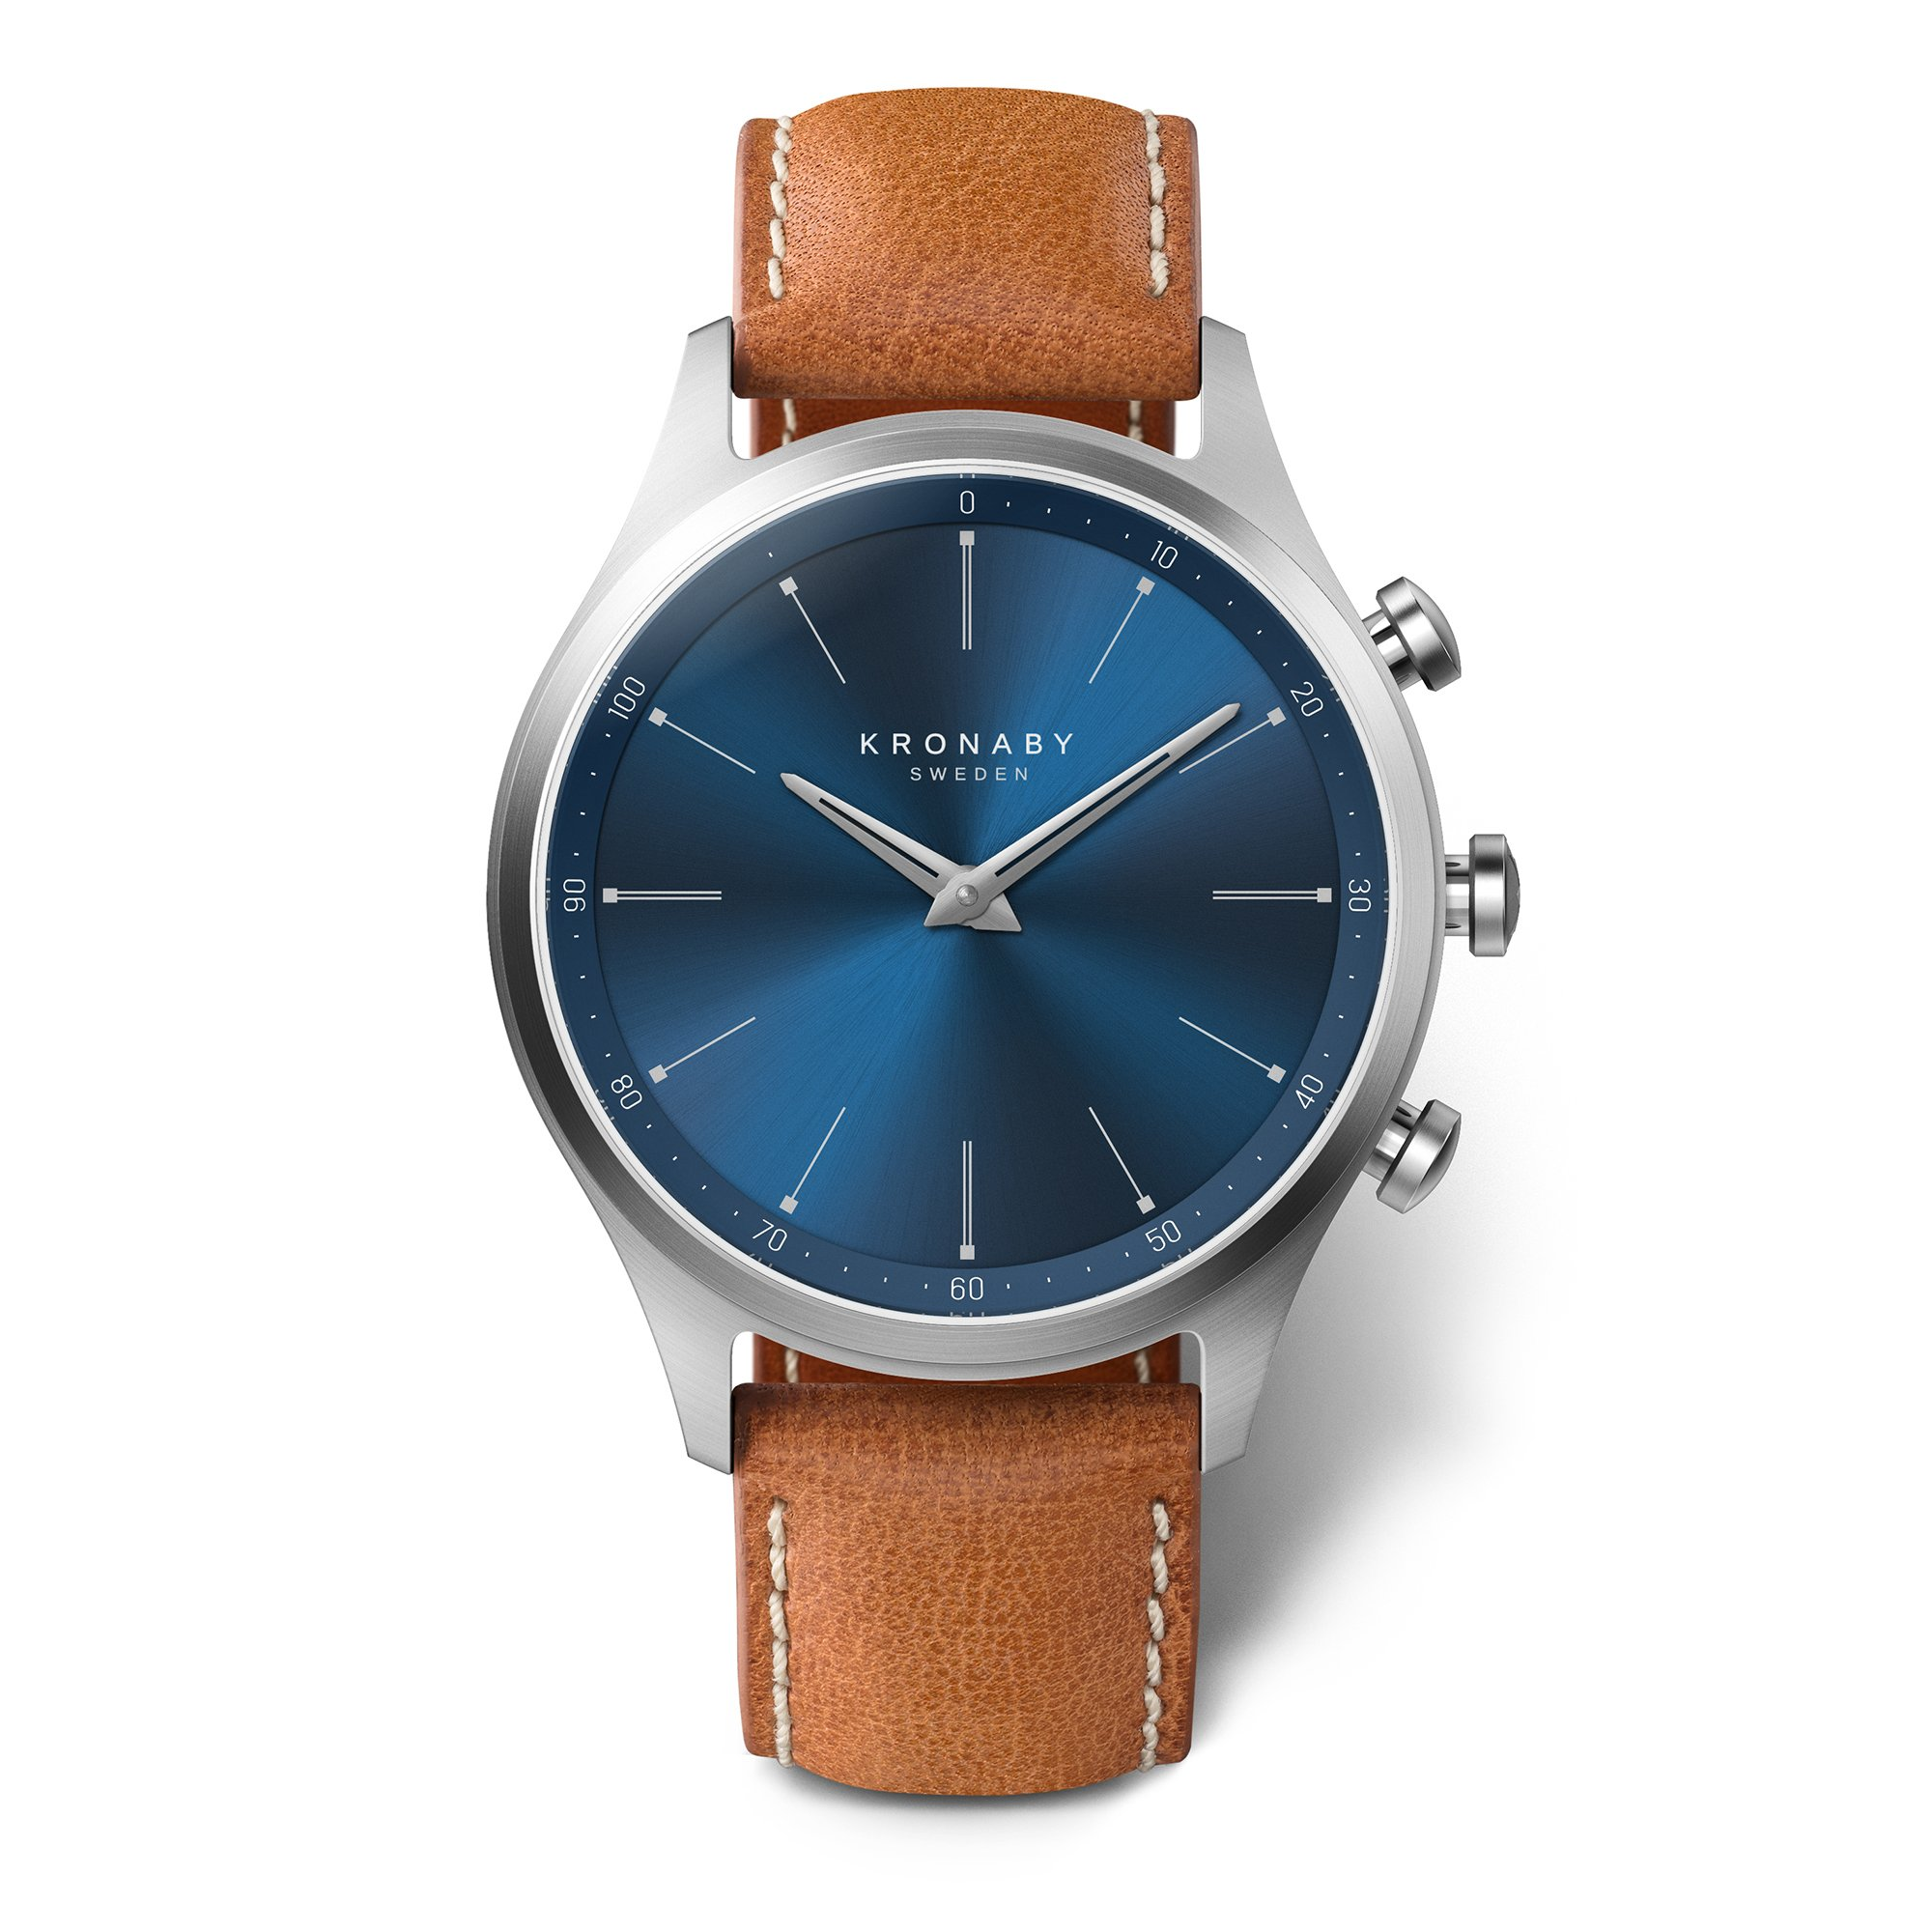 KRONABY SEKEL Connected Movement Unisex Watch A1000-3124 Watch Ladies/Mens a Traditional Watch with The Capabilities of a smartwatch